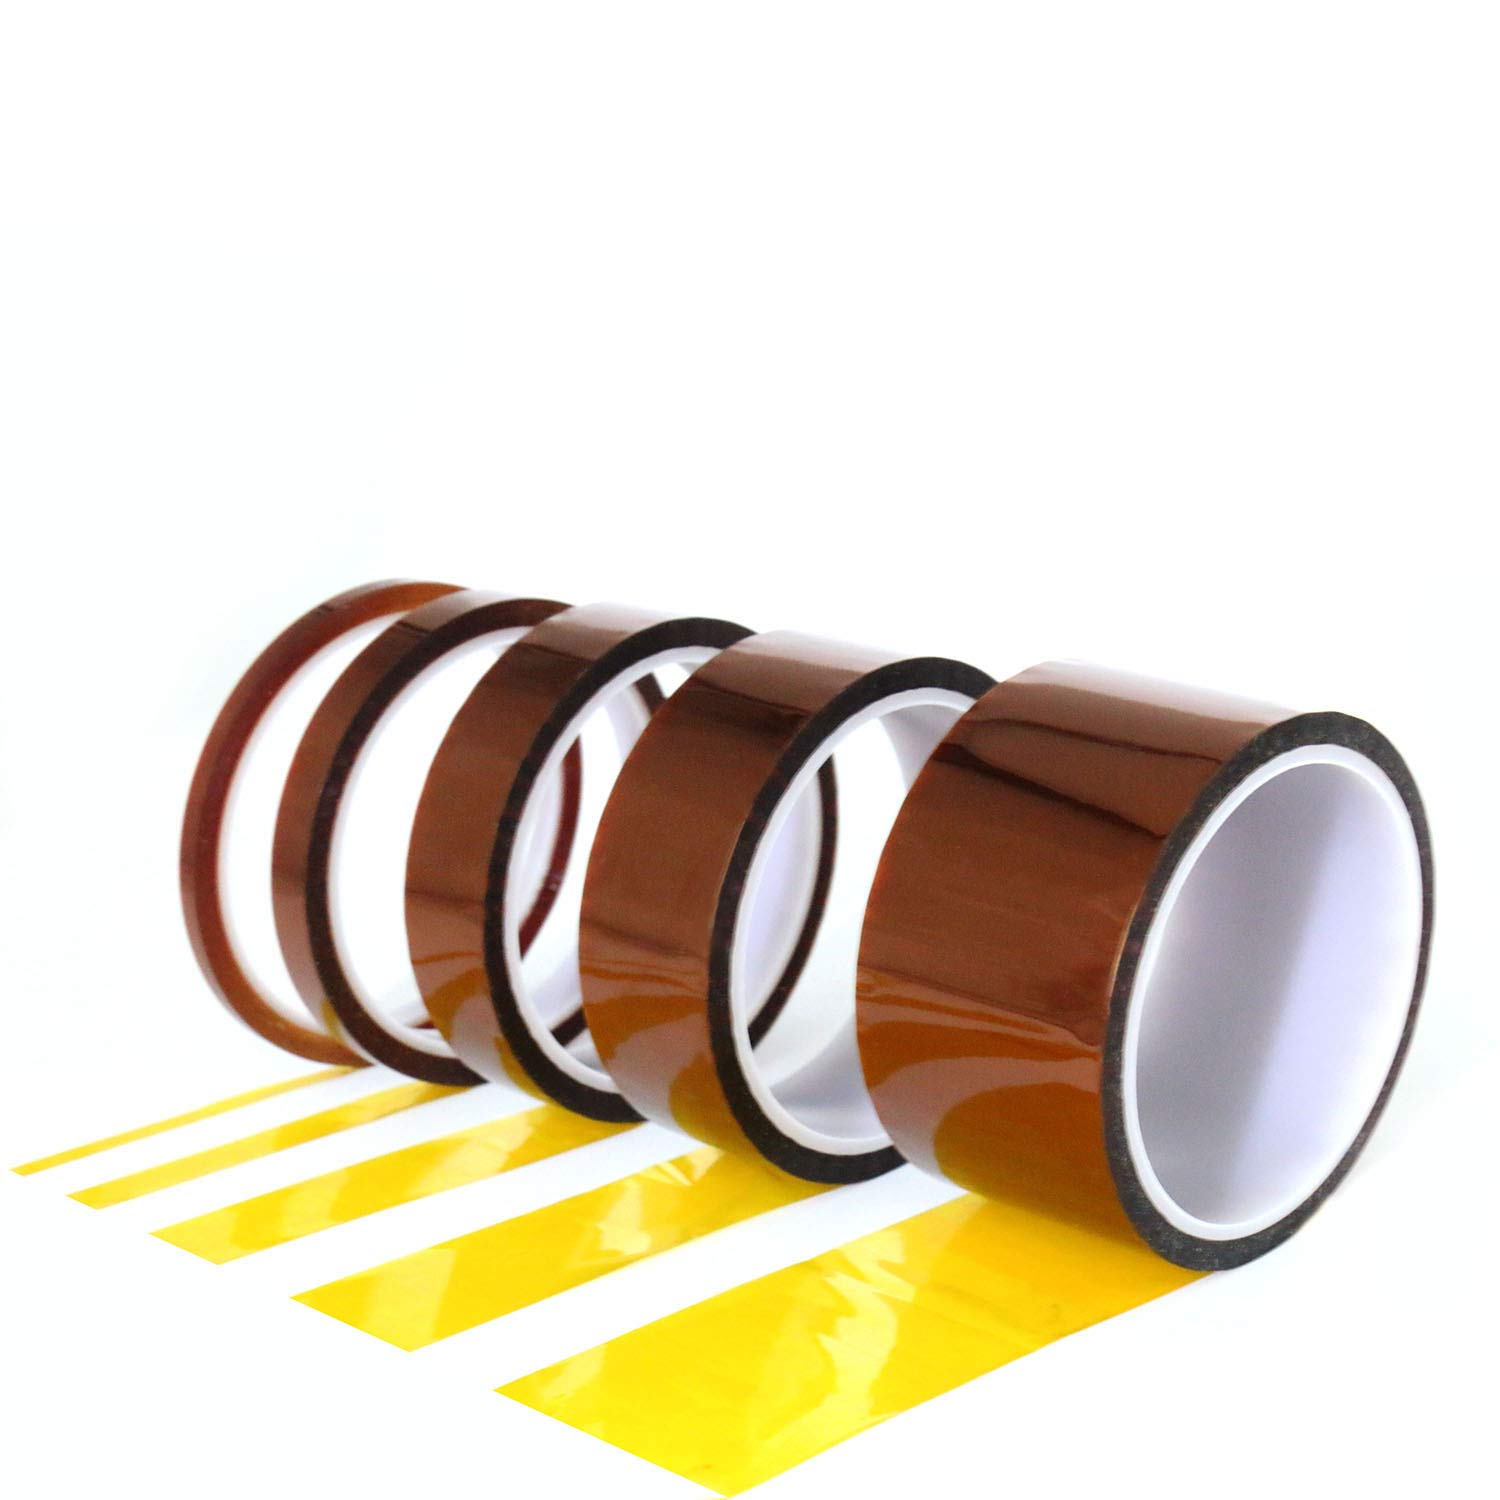 Tueascallk 5 Rolls of Different Specifications Heat-Resistant Insulating Transparent Polyimide High Temperature Tape Kit, Transparent Yellow, 180 Yards